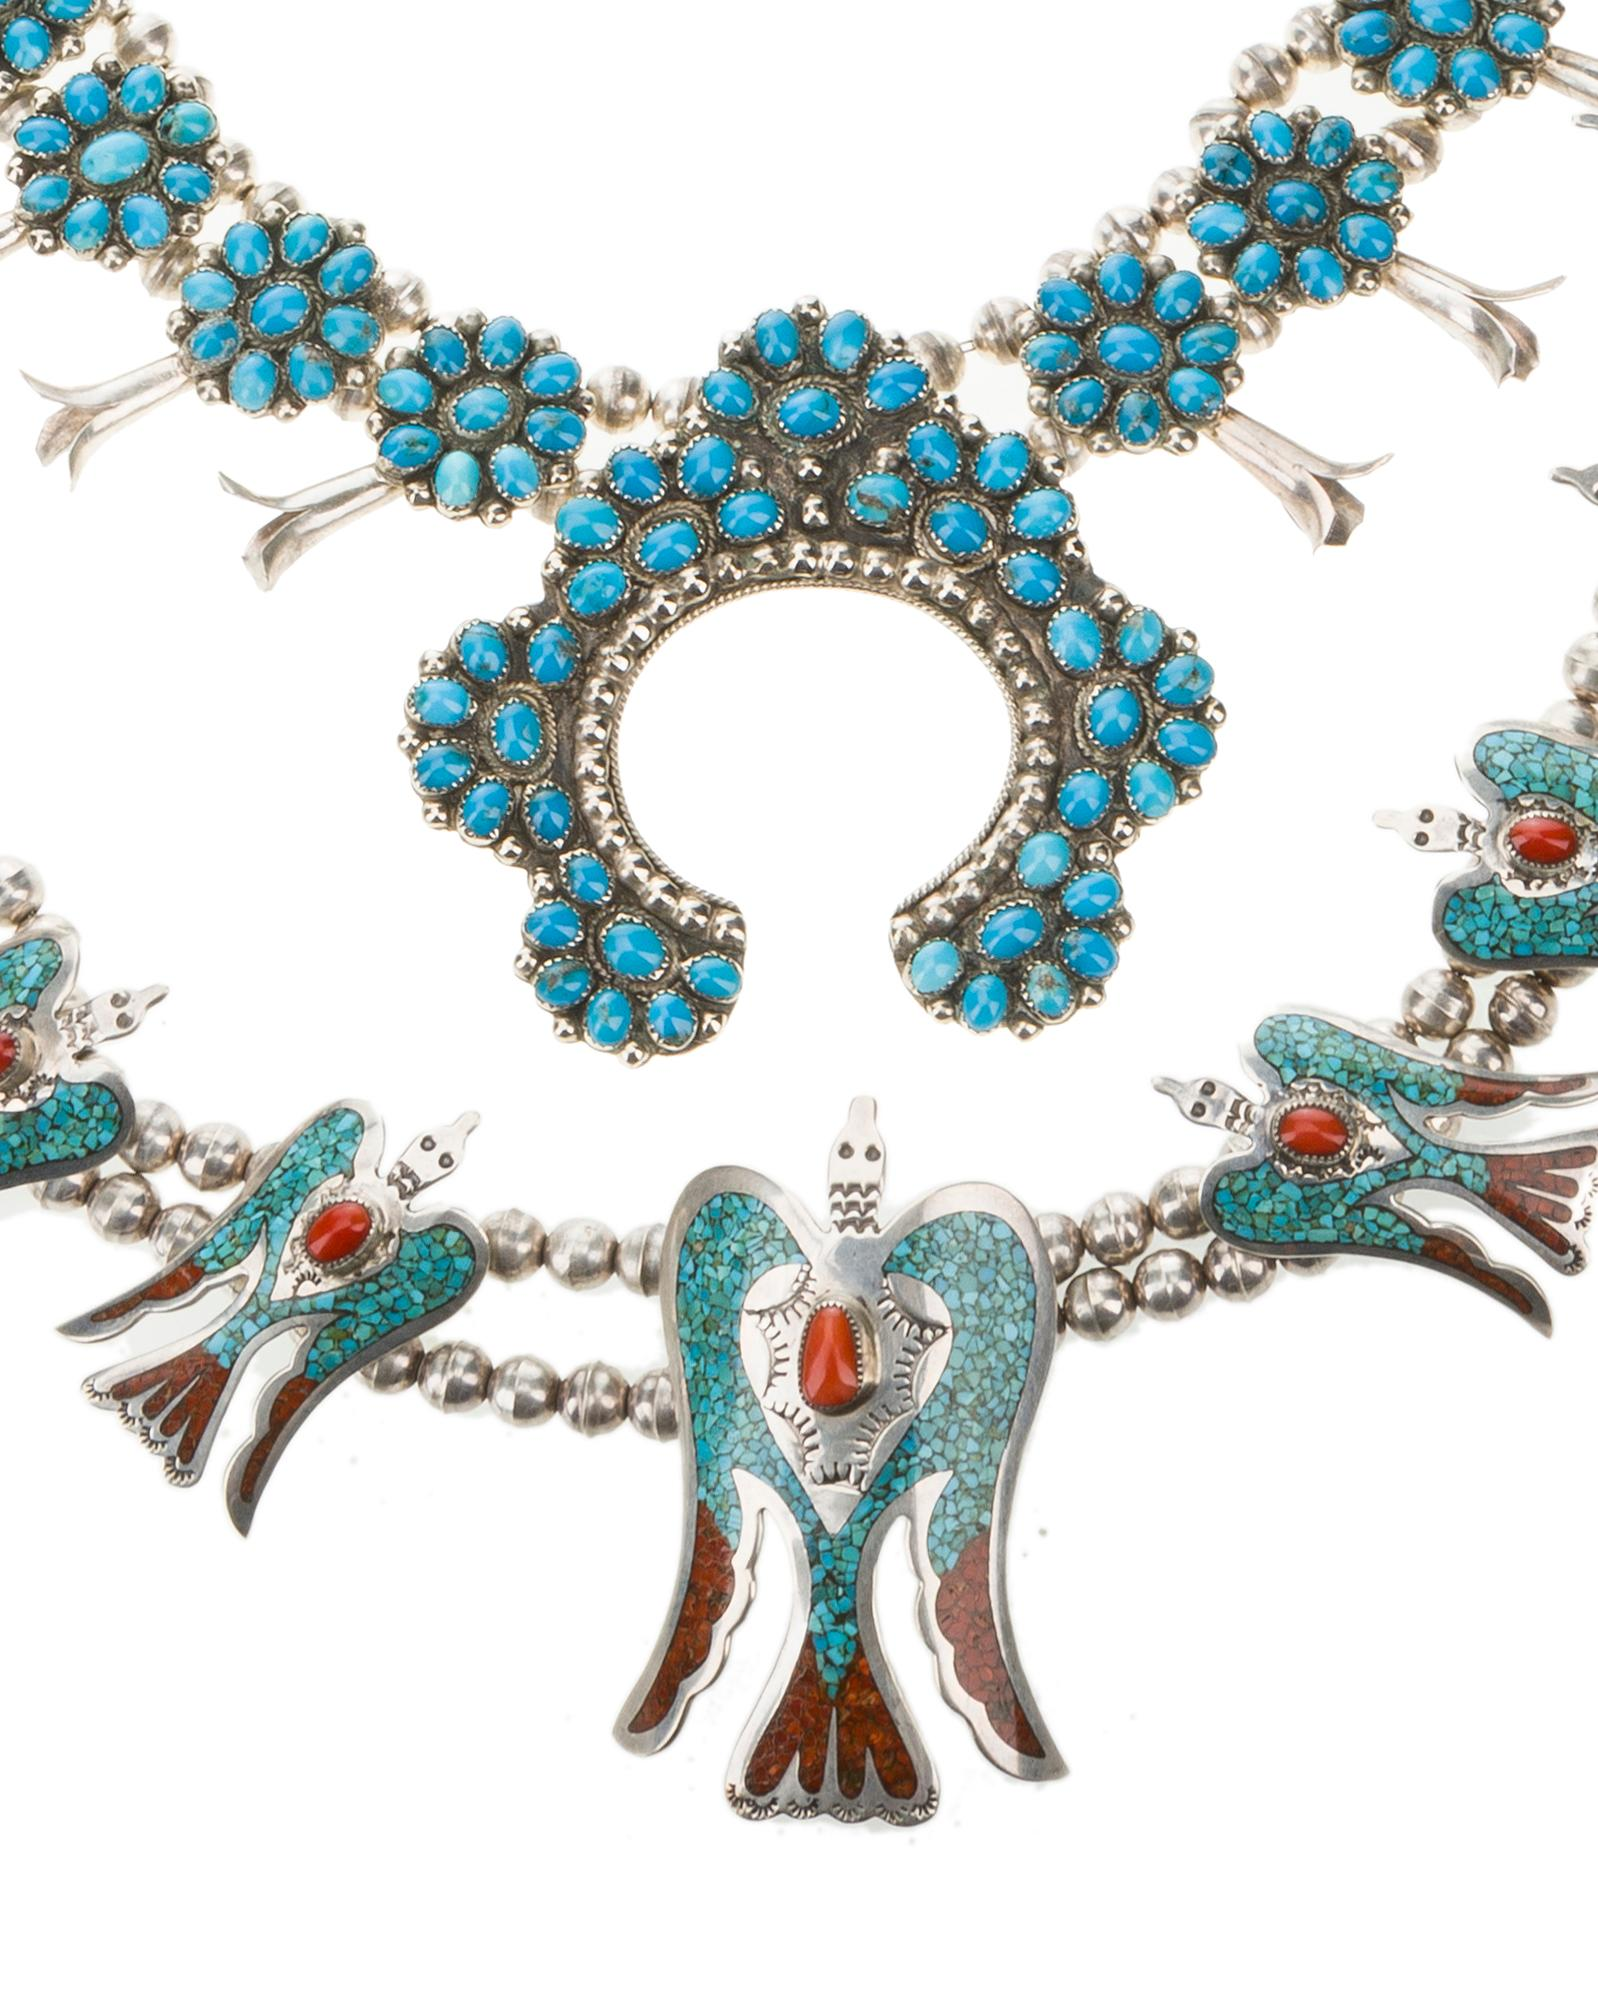 Two American Indian gem-set silver necklaces